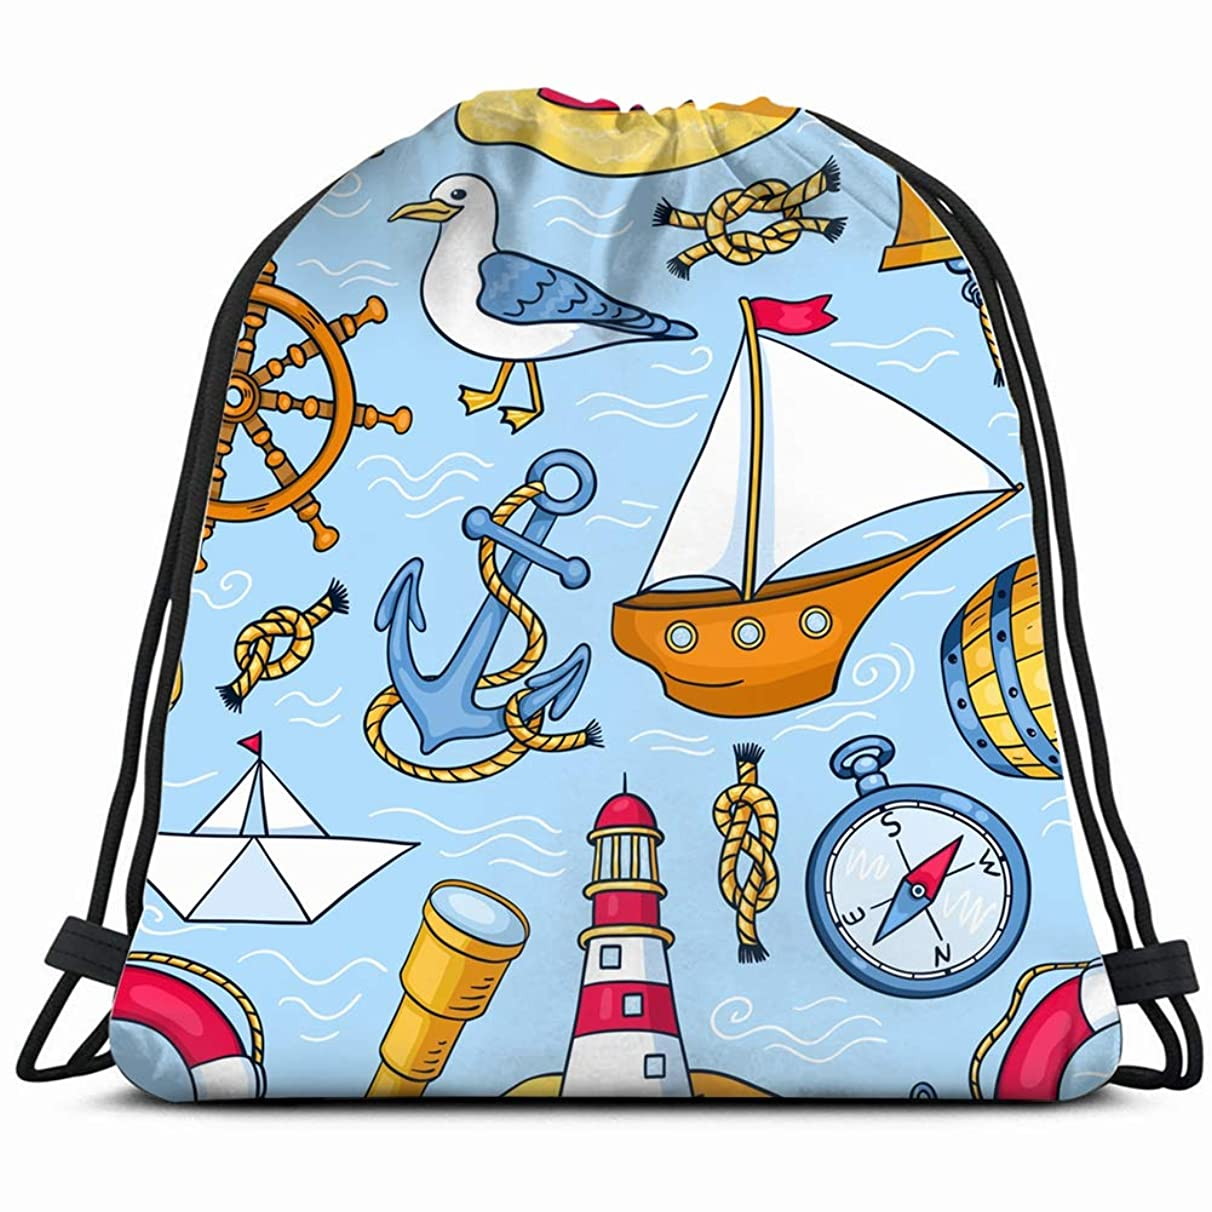 sea objects cartoon nature nautical transportation Drawstring Backpack Gym Sack Lightweight Bag Water Resistant Gym Backpack for Women&Men for Sports,Travelling,Hiking,Camping,Shopping Yoga